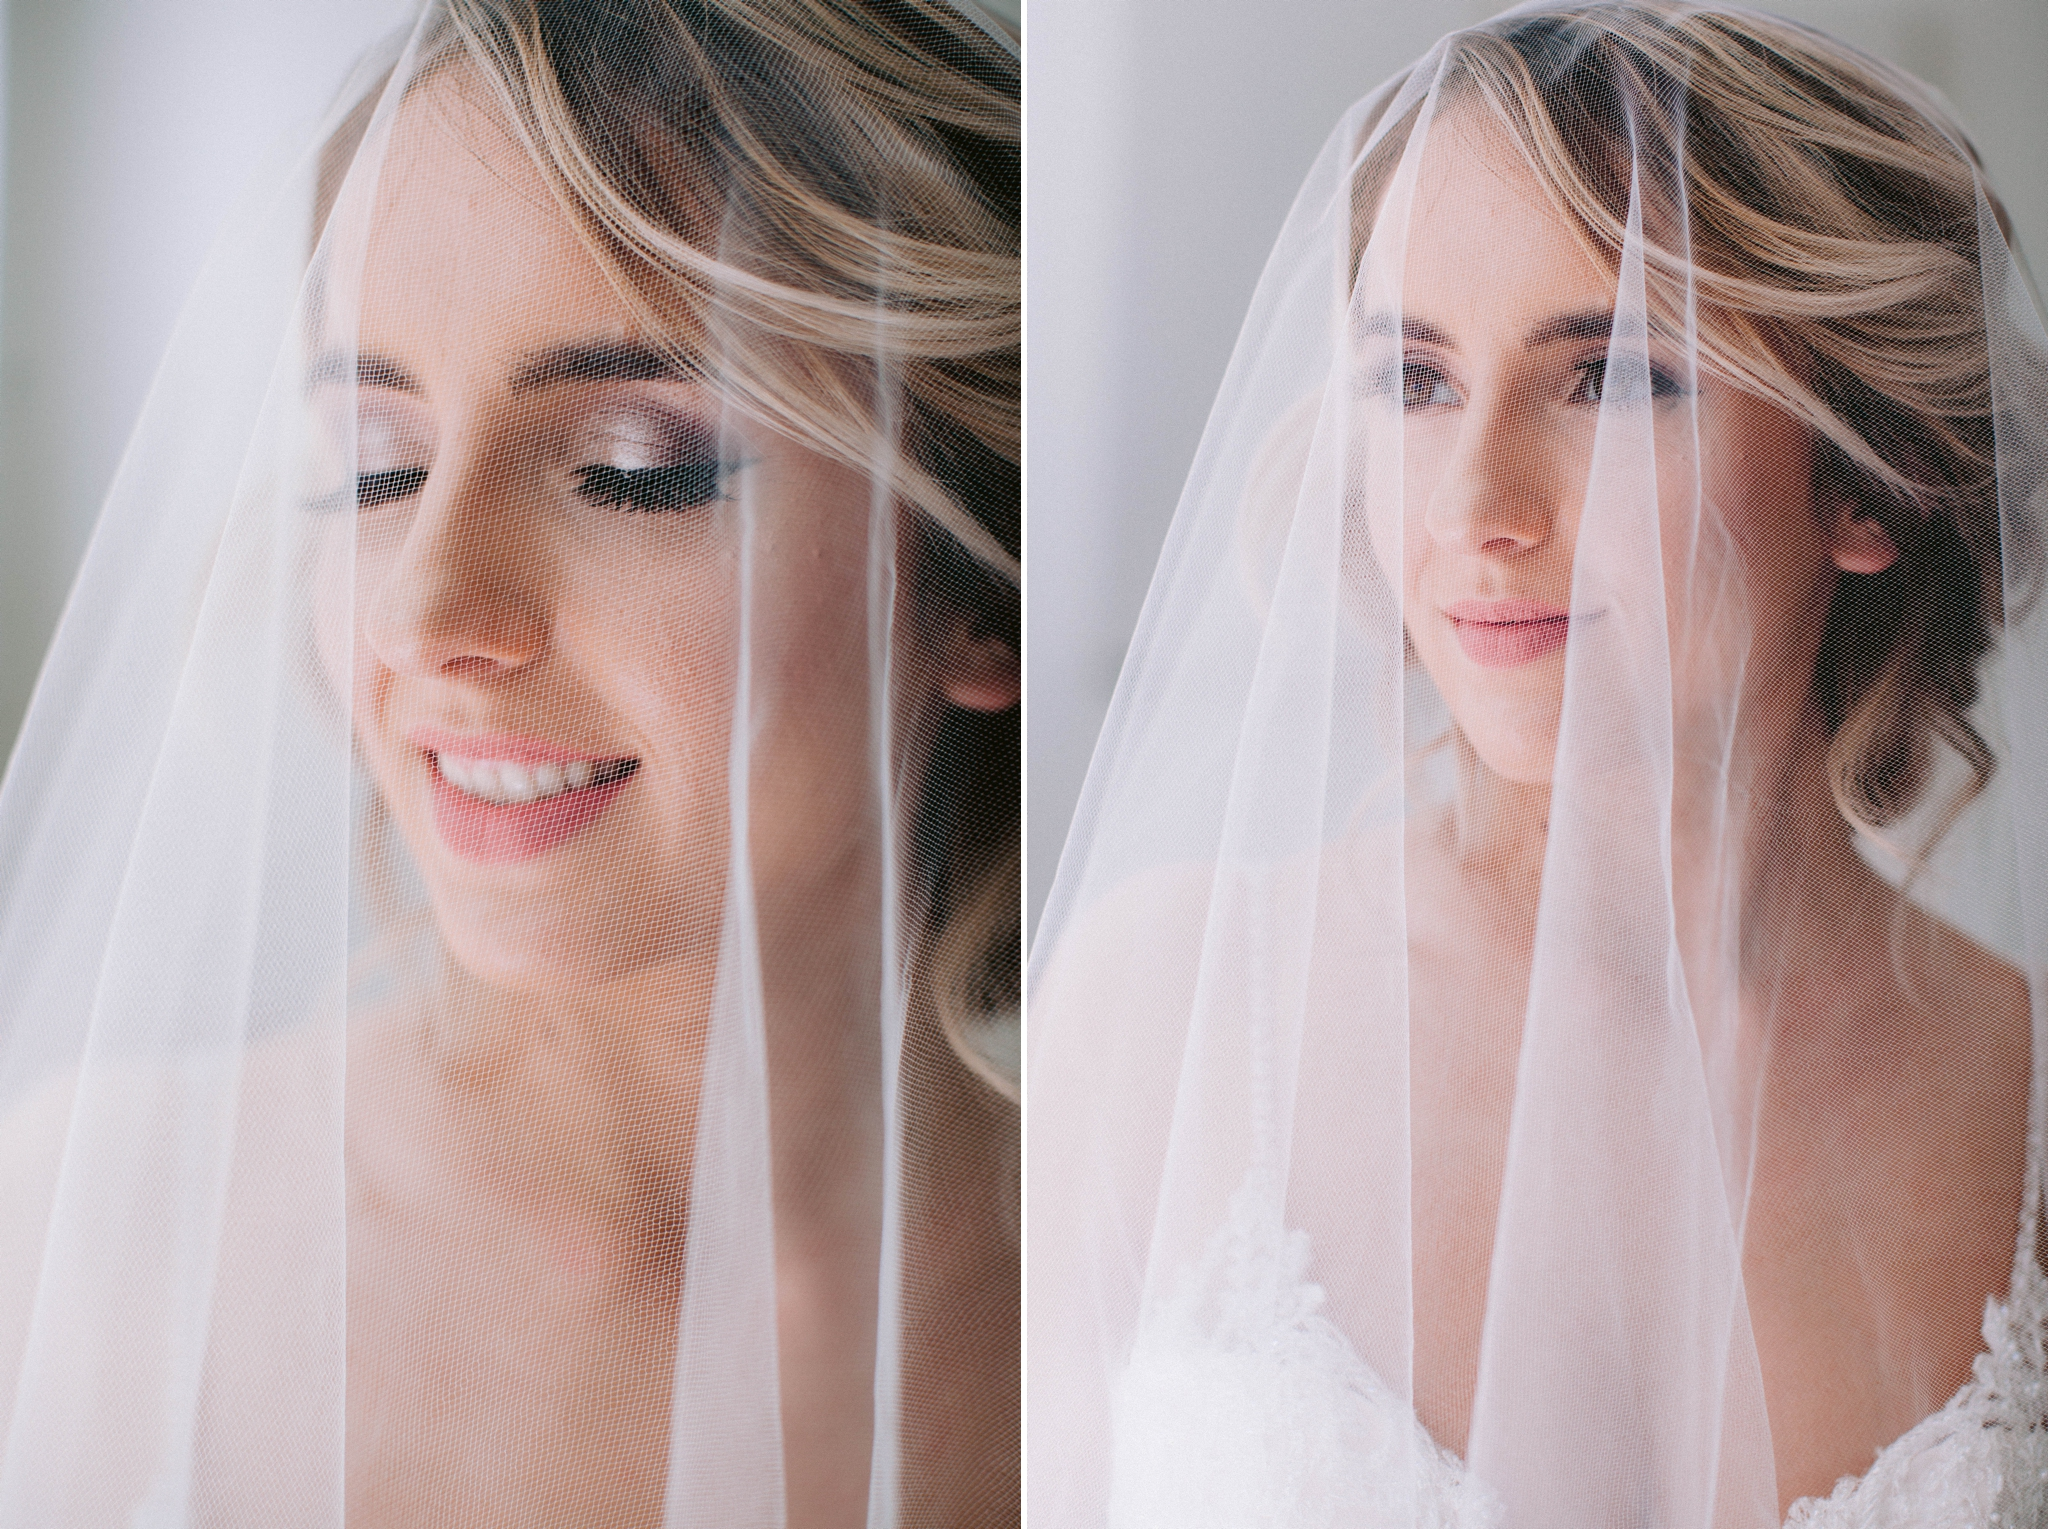 beauty shot - Indoor Natural Light Bridal Portraits by a window with a white backdrop - classic bride with soft drop veil over her face - wedding gown by Stella York - Honolulu, Oahu, Hawaii Wedding Photographer